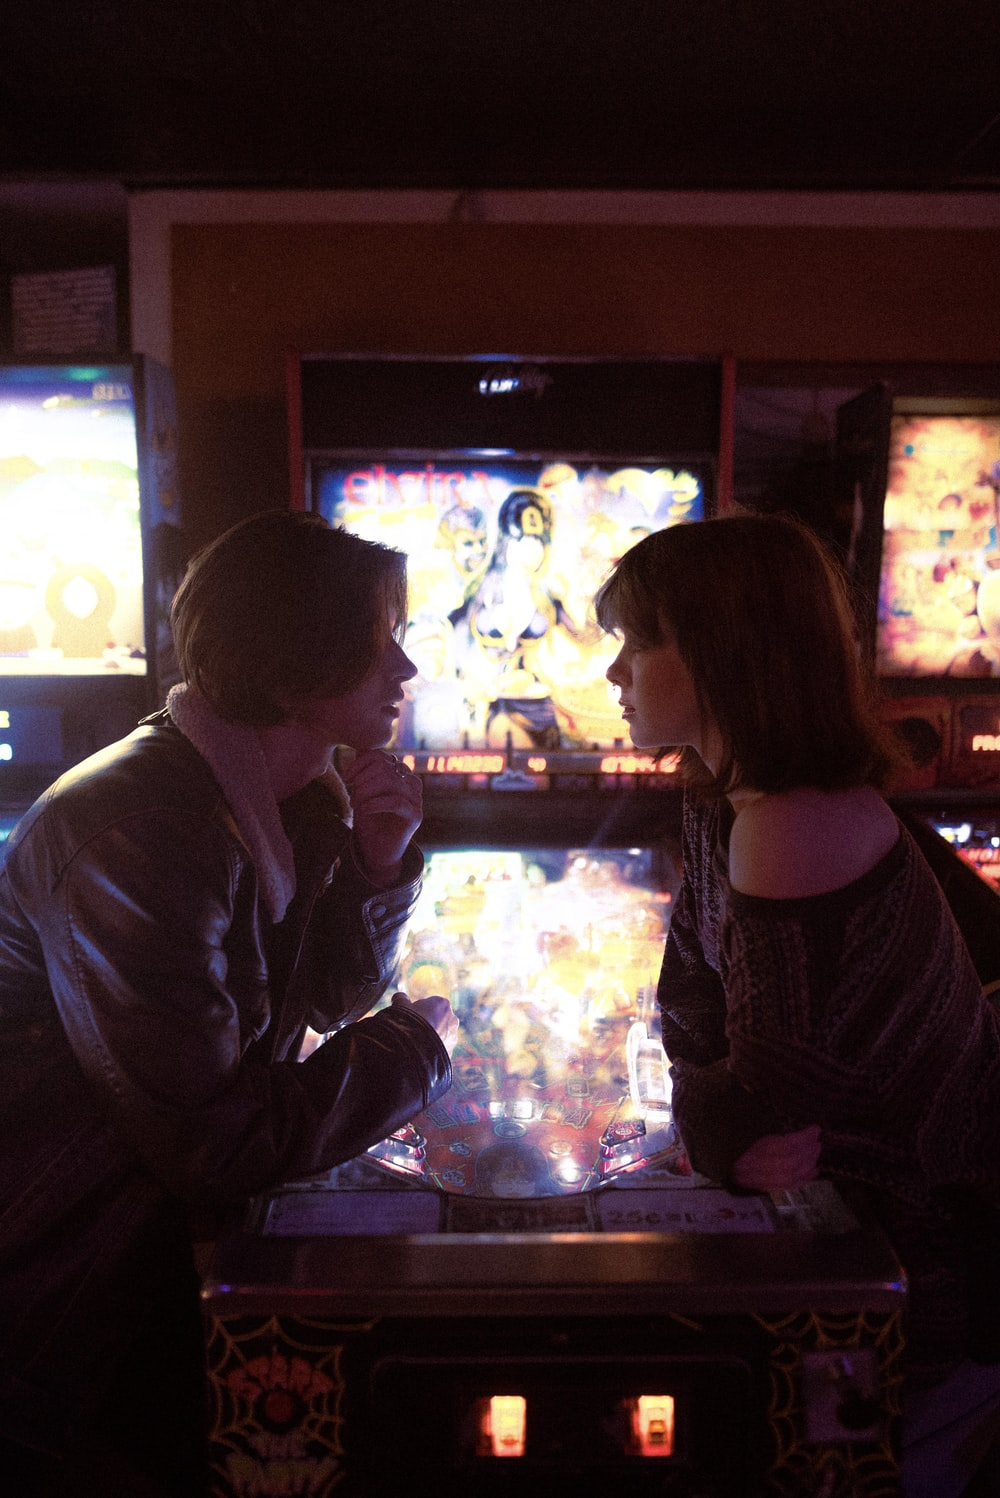 man and woman sitting in front of black flat screen tv